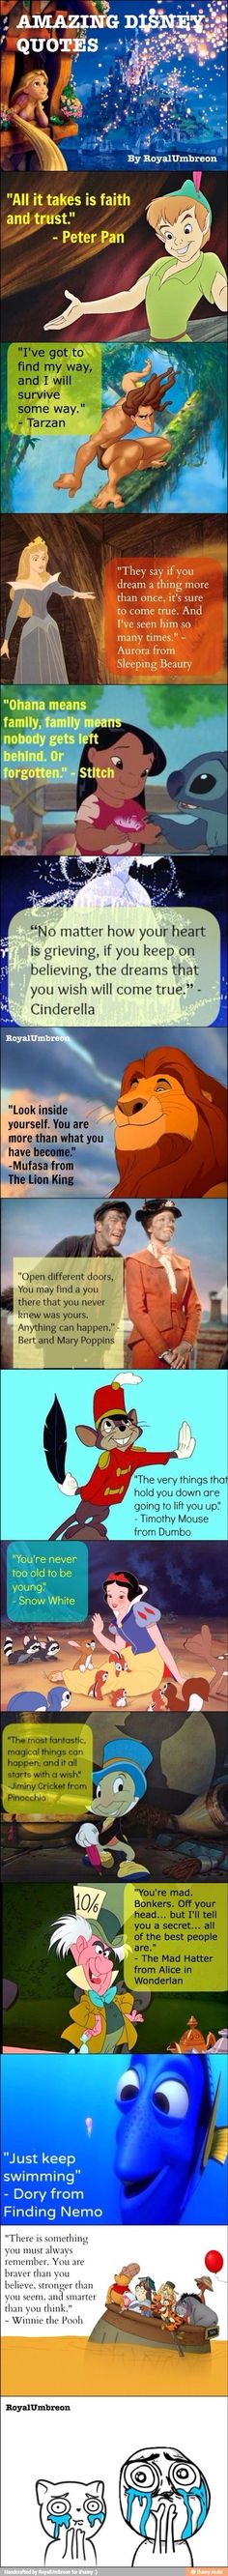 Disney quotes                                                                                                                                                                                 More